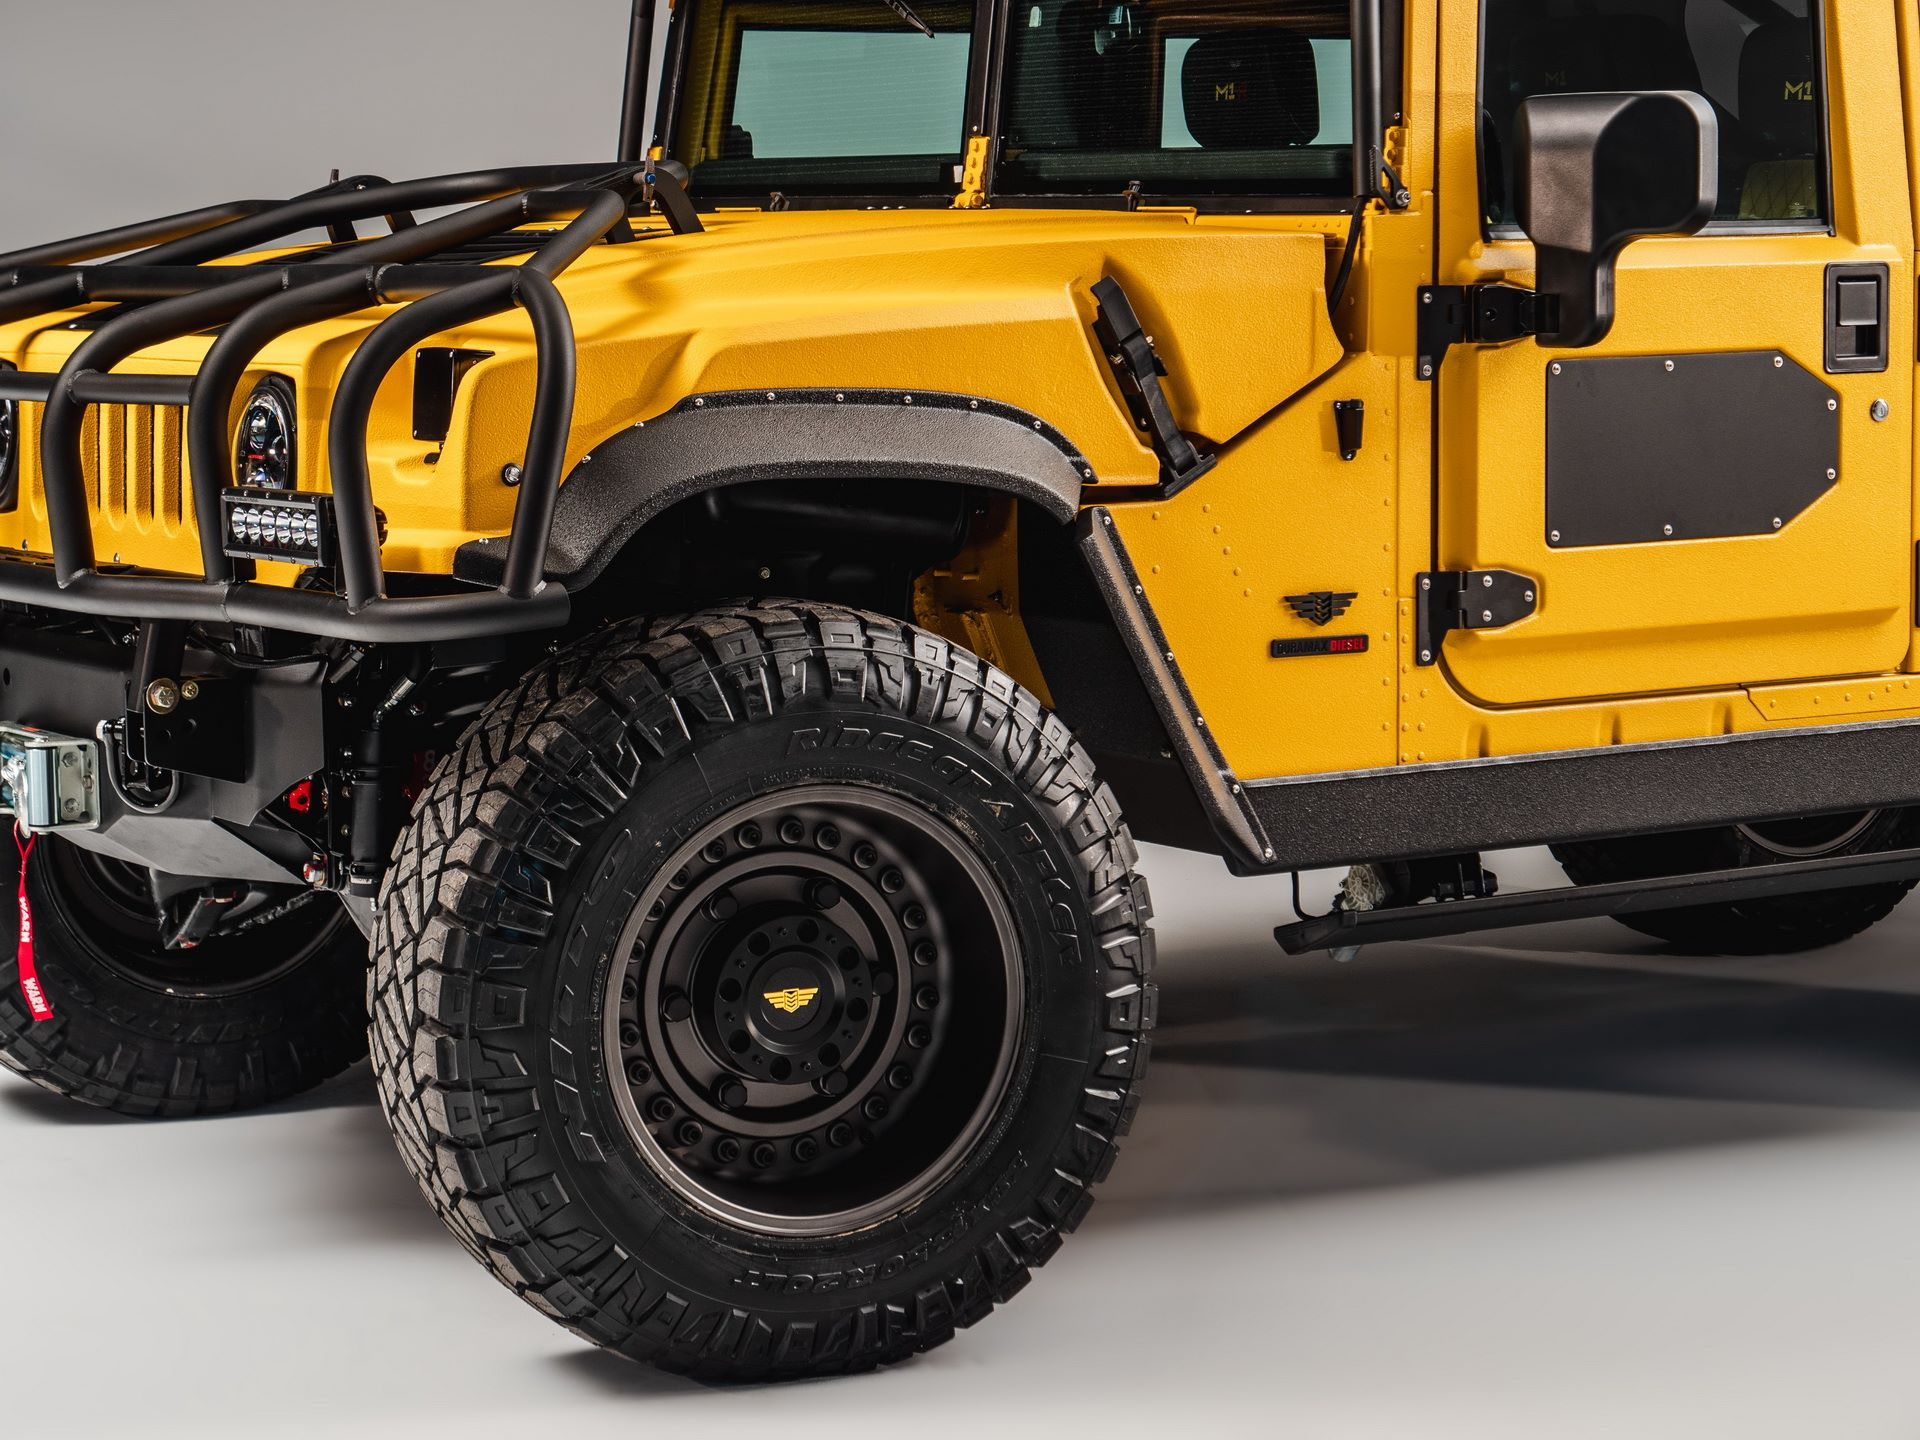 Hummer-M1-R-by-Mil-Spec-14